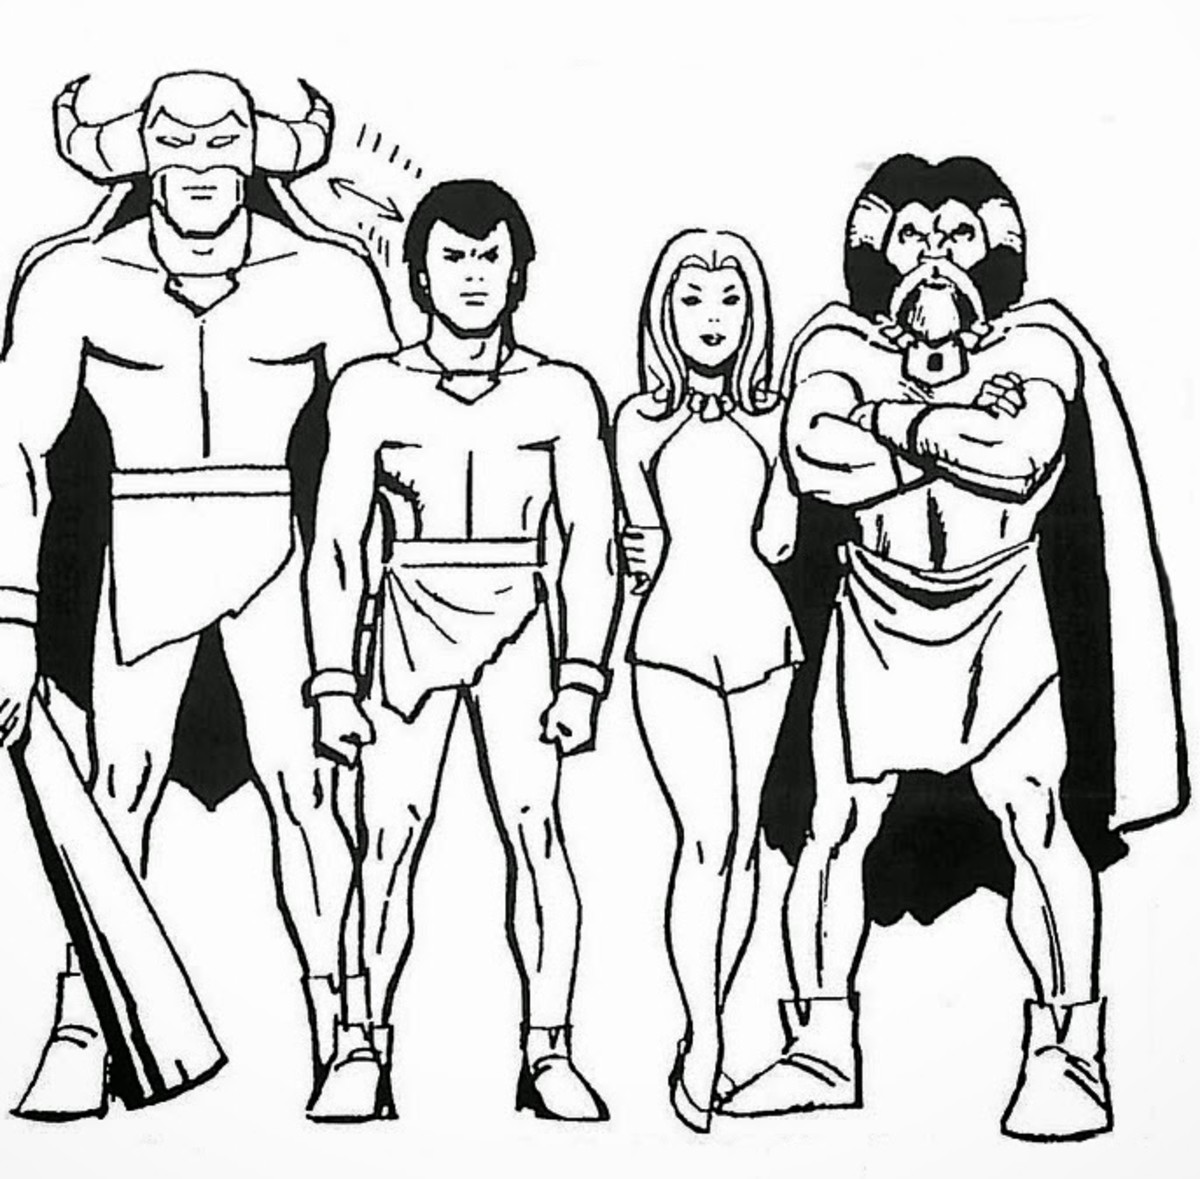 Model sheet for Mightor, Tor, Sheera, and Pondo, drawn by Alex Toth